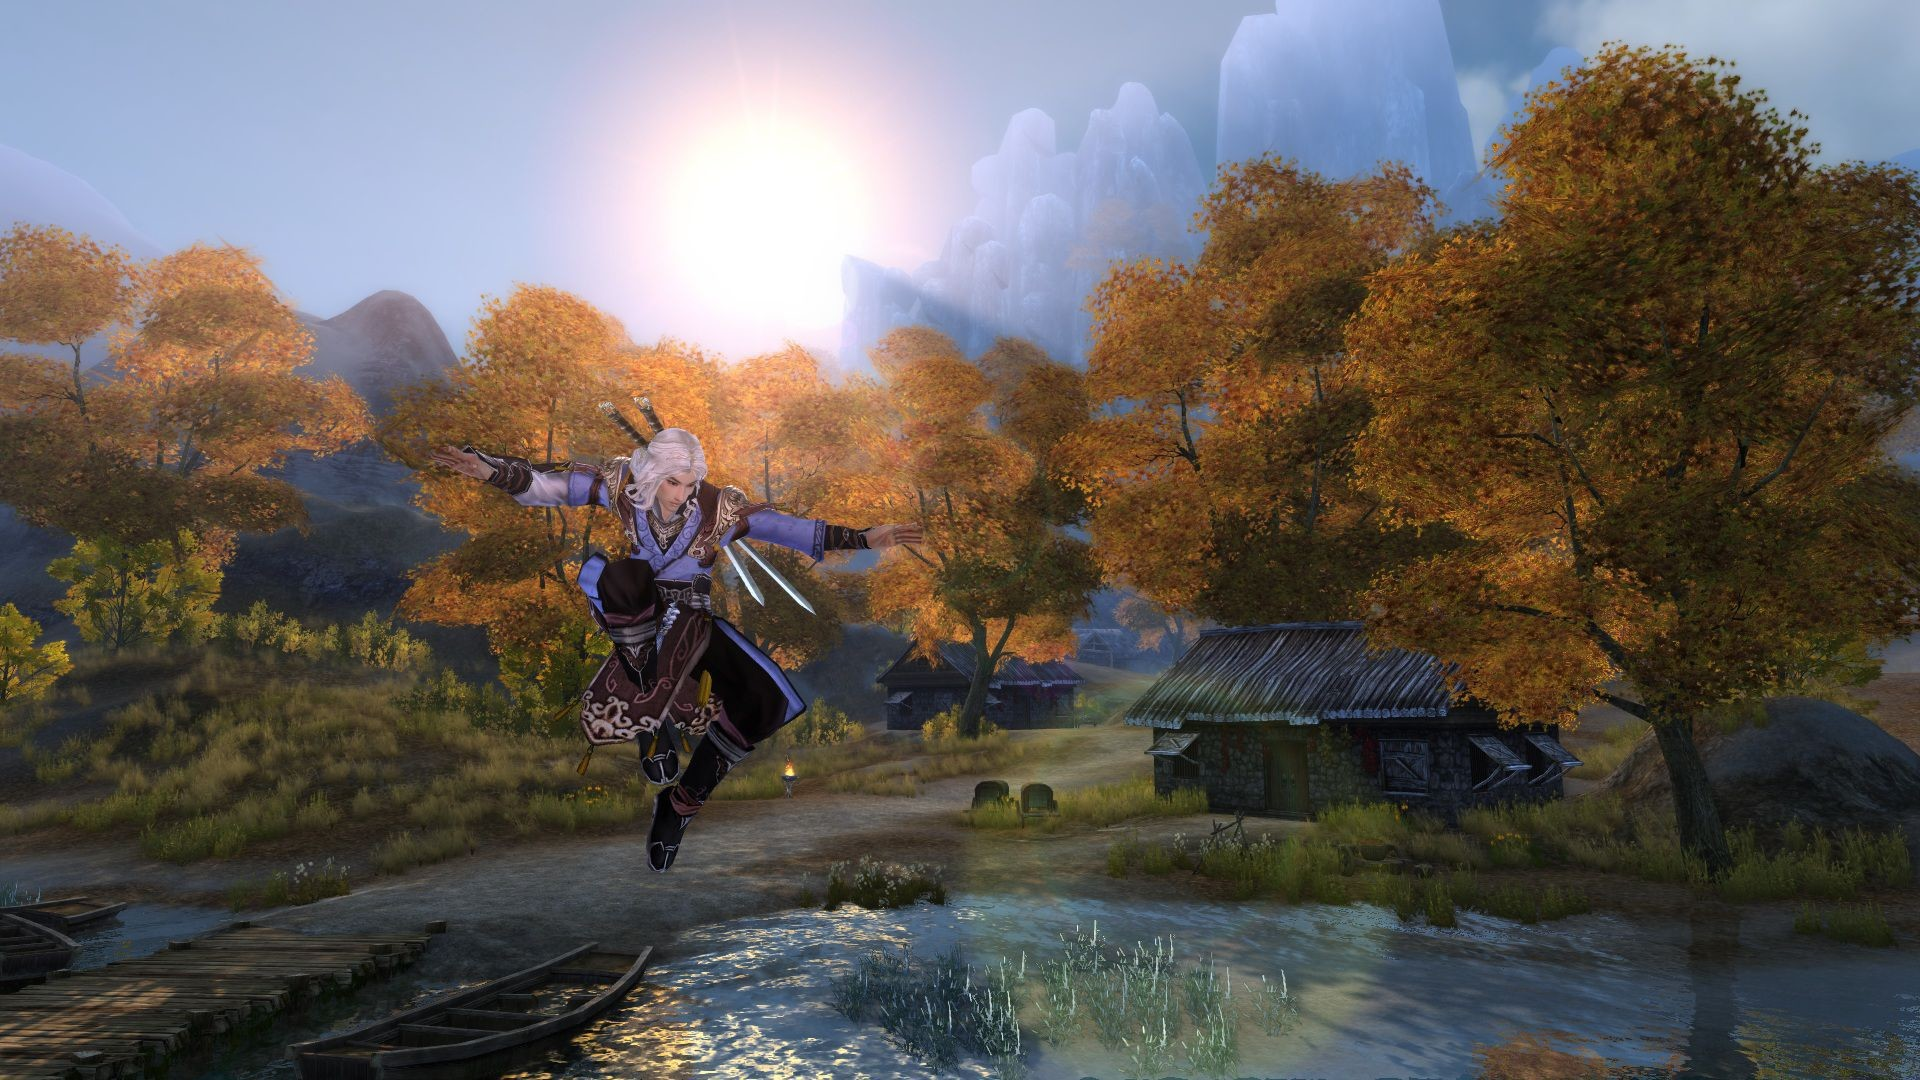 wushu wallpapers 62 images